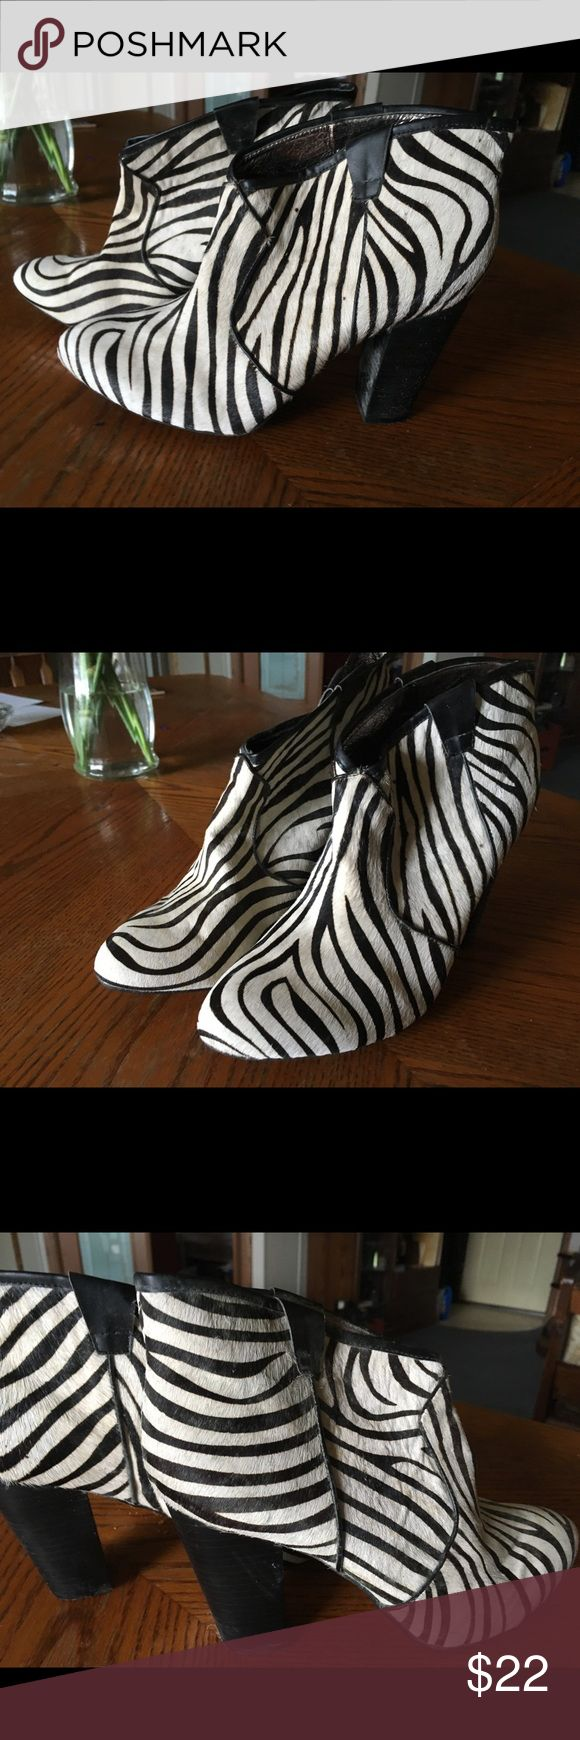 Deena & Ozzy zebra booties, size 10 ( UO) Really cute zebra print calfskin booties from Urban Outfitters. Size 10. Perfect condition!  These were worn once for a fashion shoot. I no longer have the box. Deena & Oozzy Shoes Ankle Boots & Booties